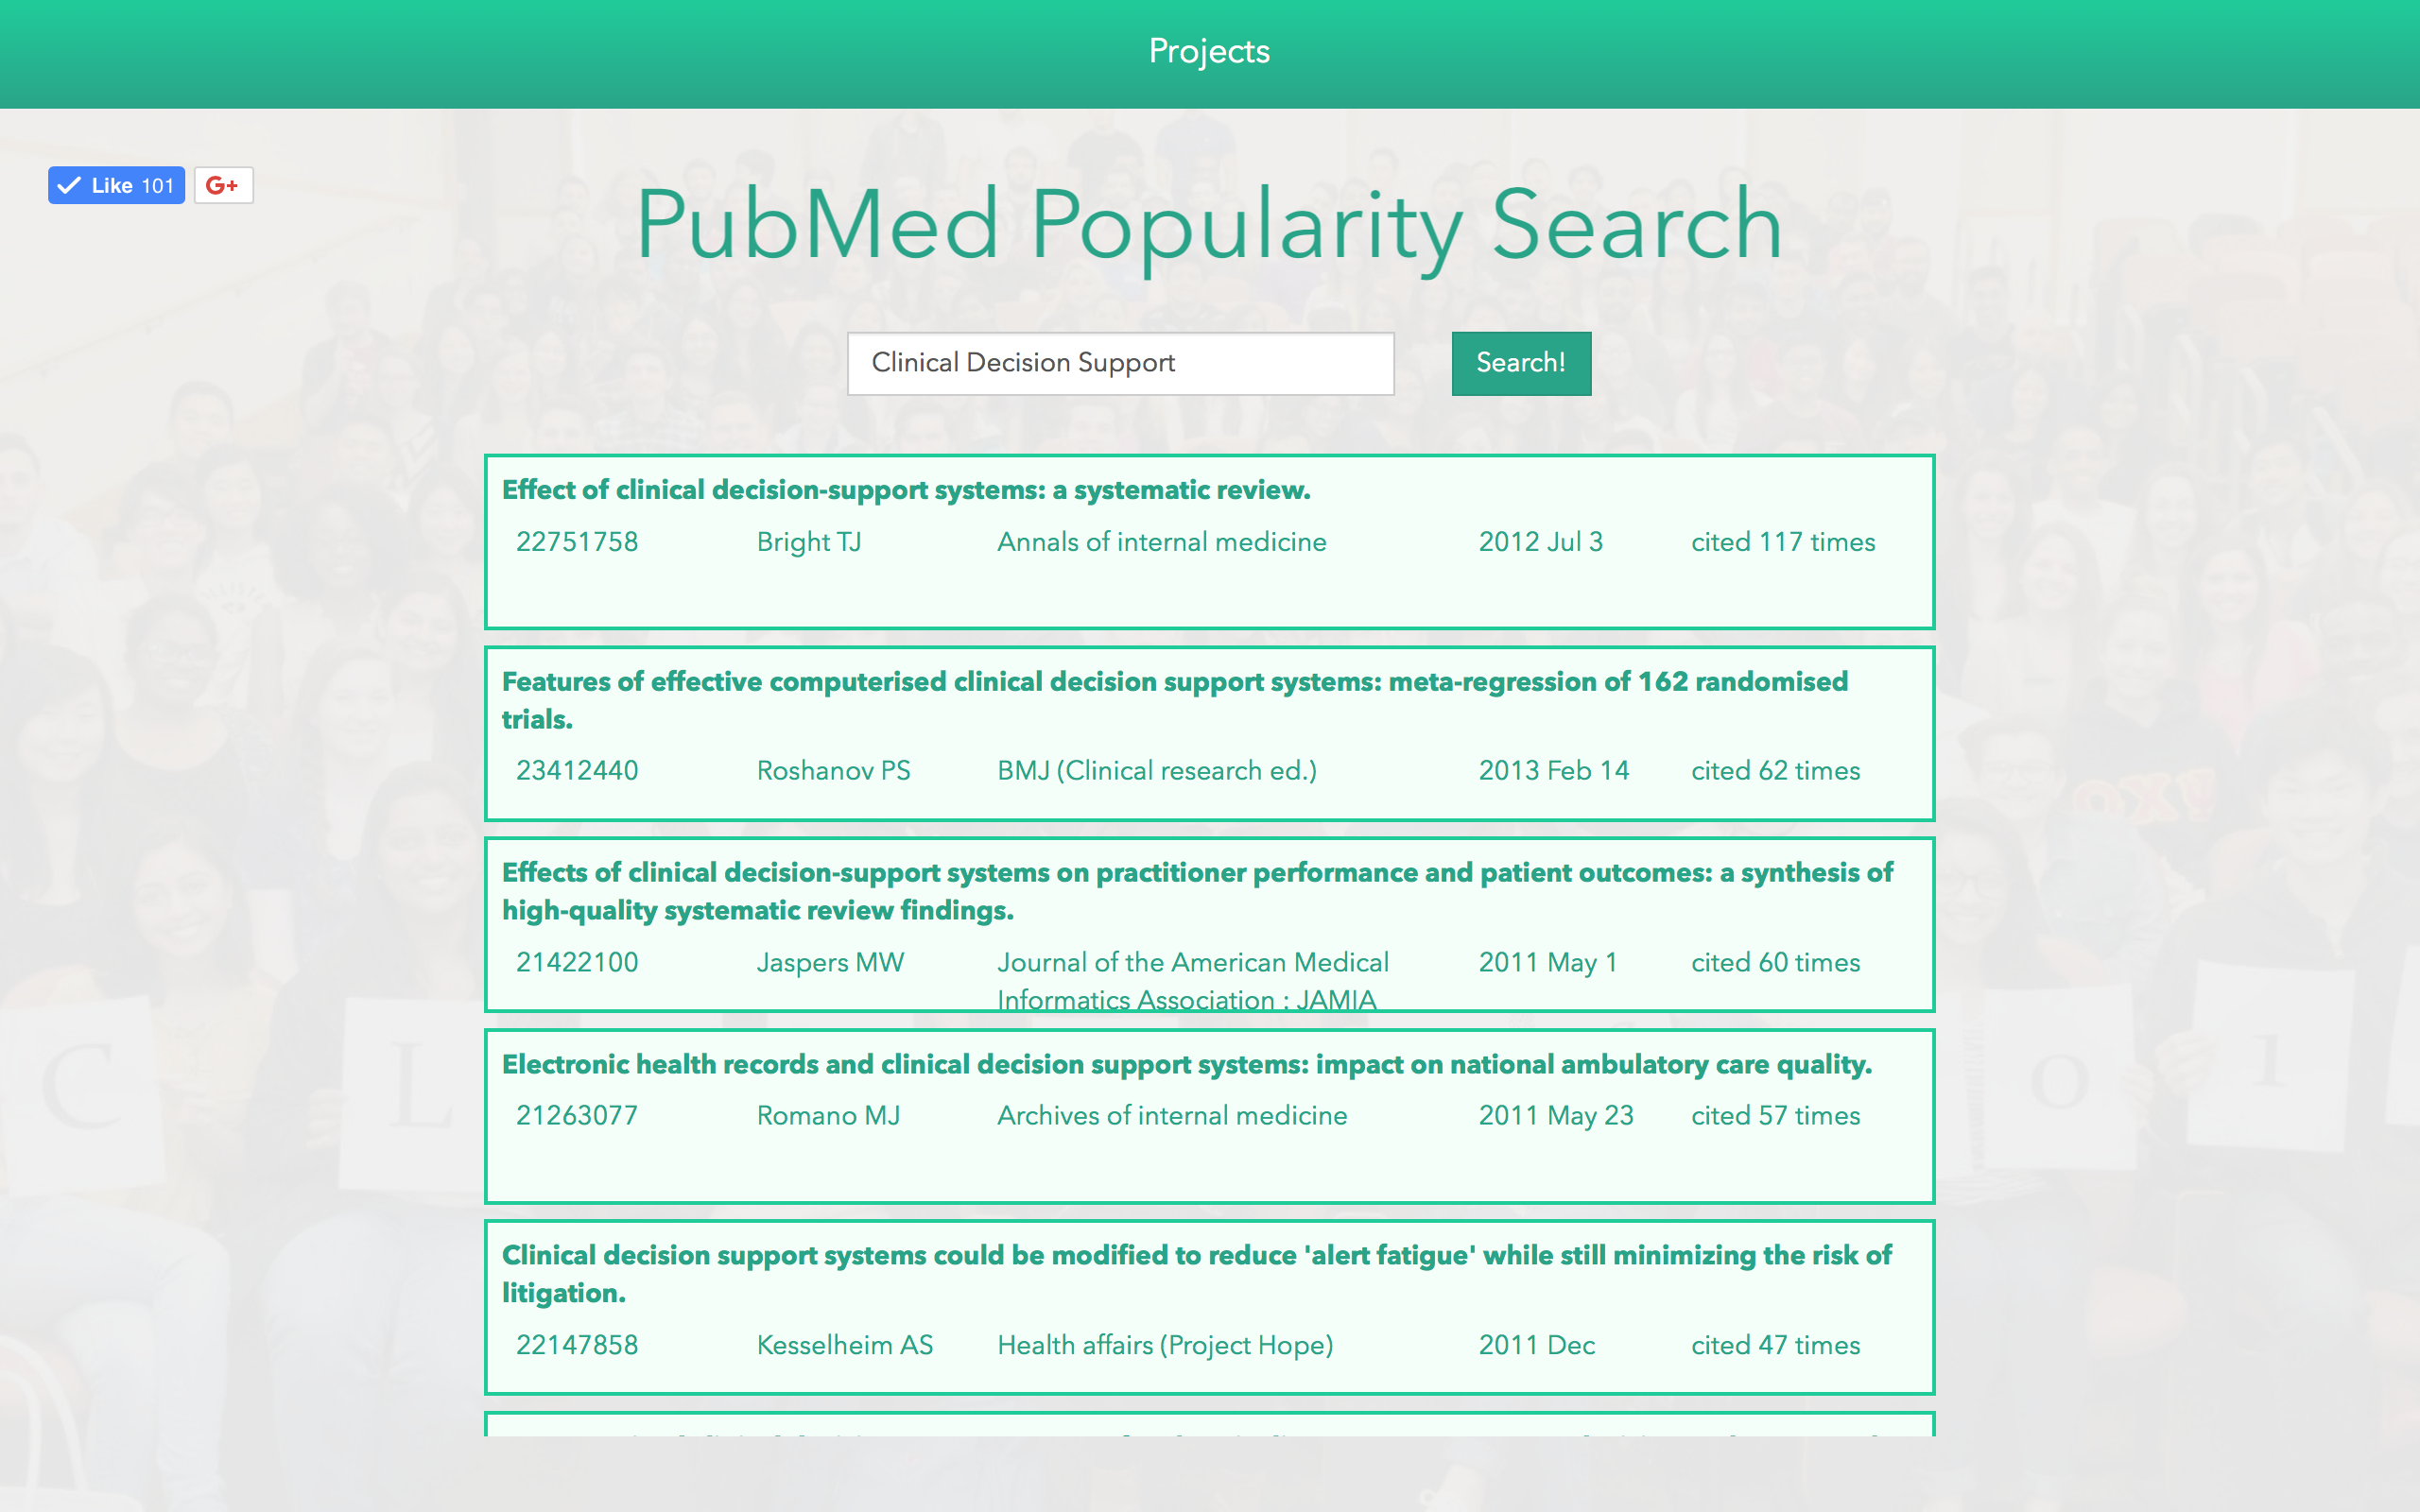 PubMed Popularity Search